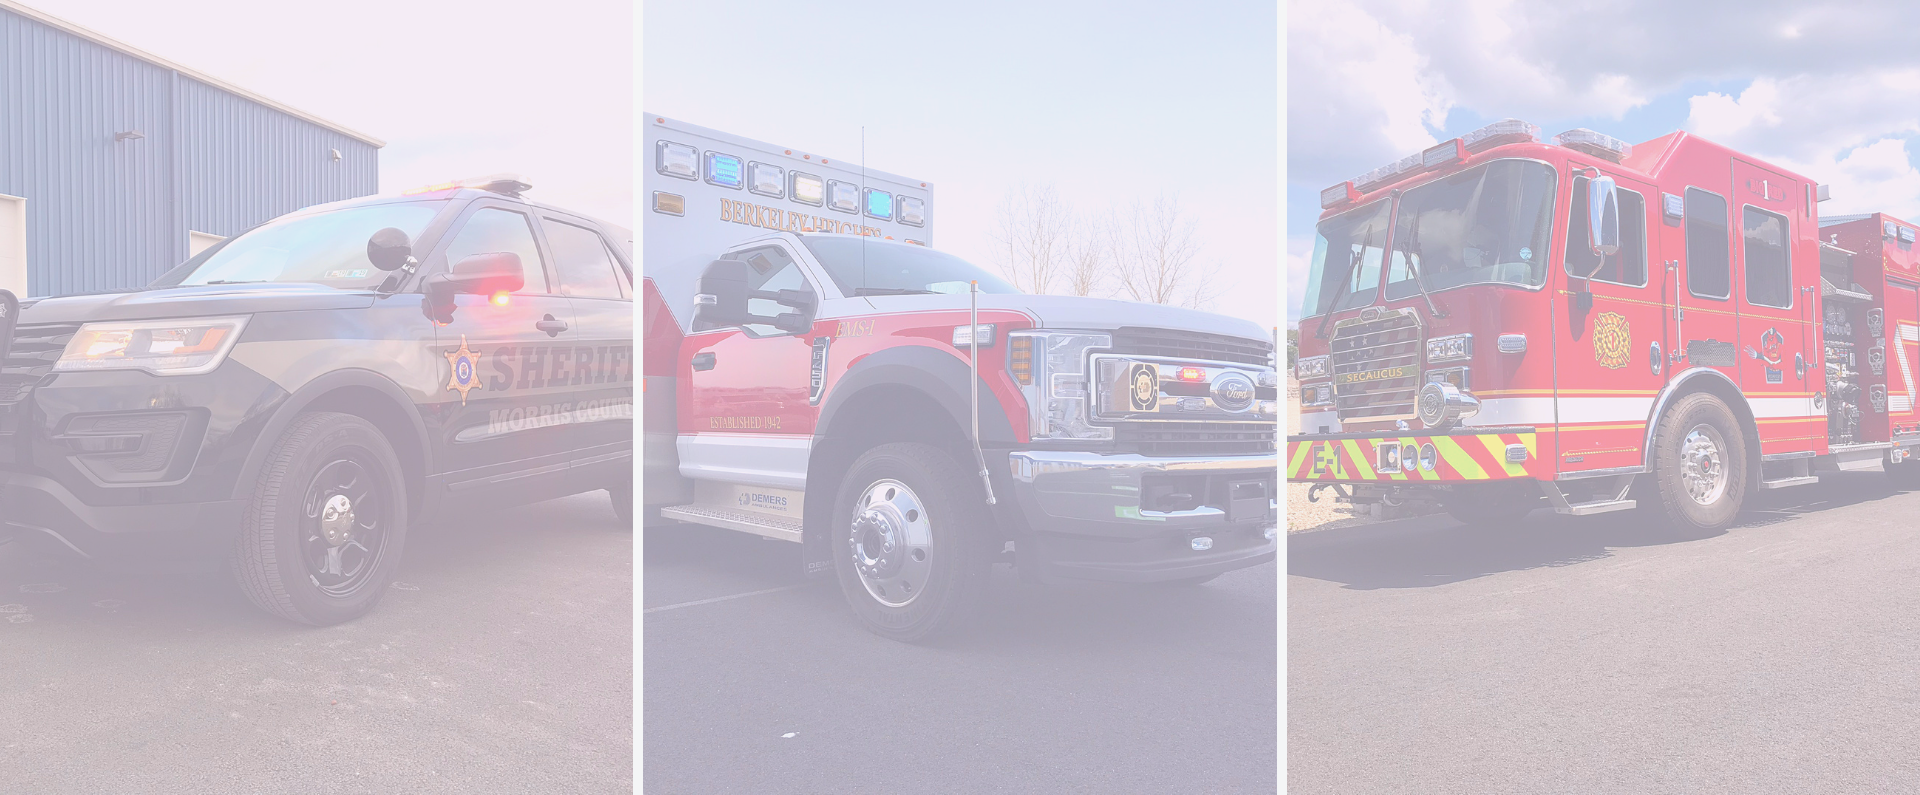 First Priority Emergency Vehicles Featured Deliveries Ambulance Conversions NJ Fire